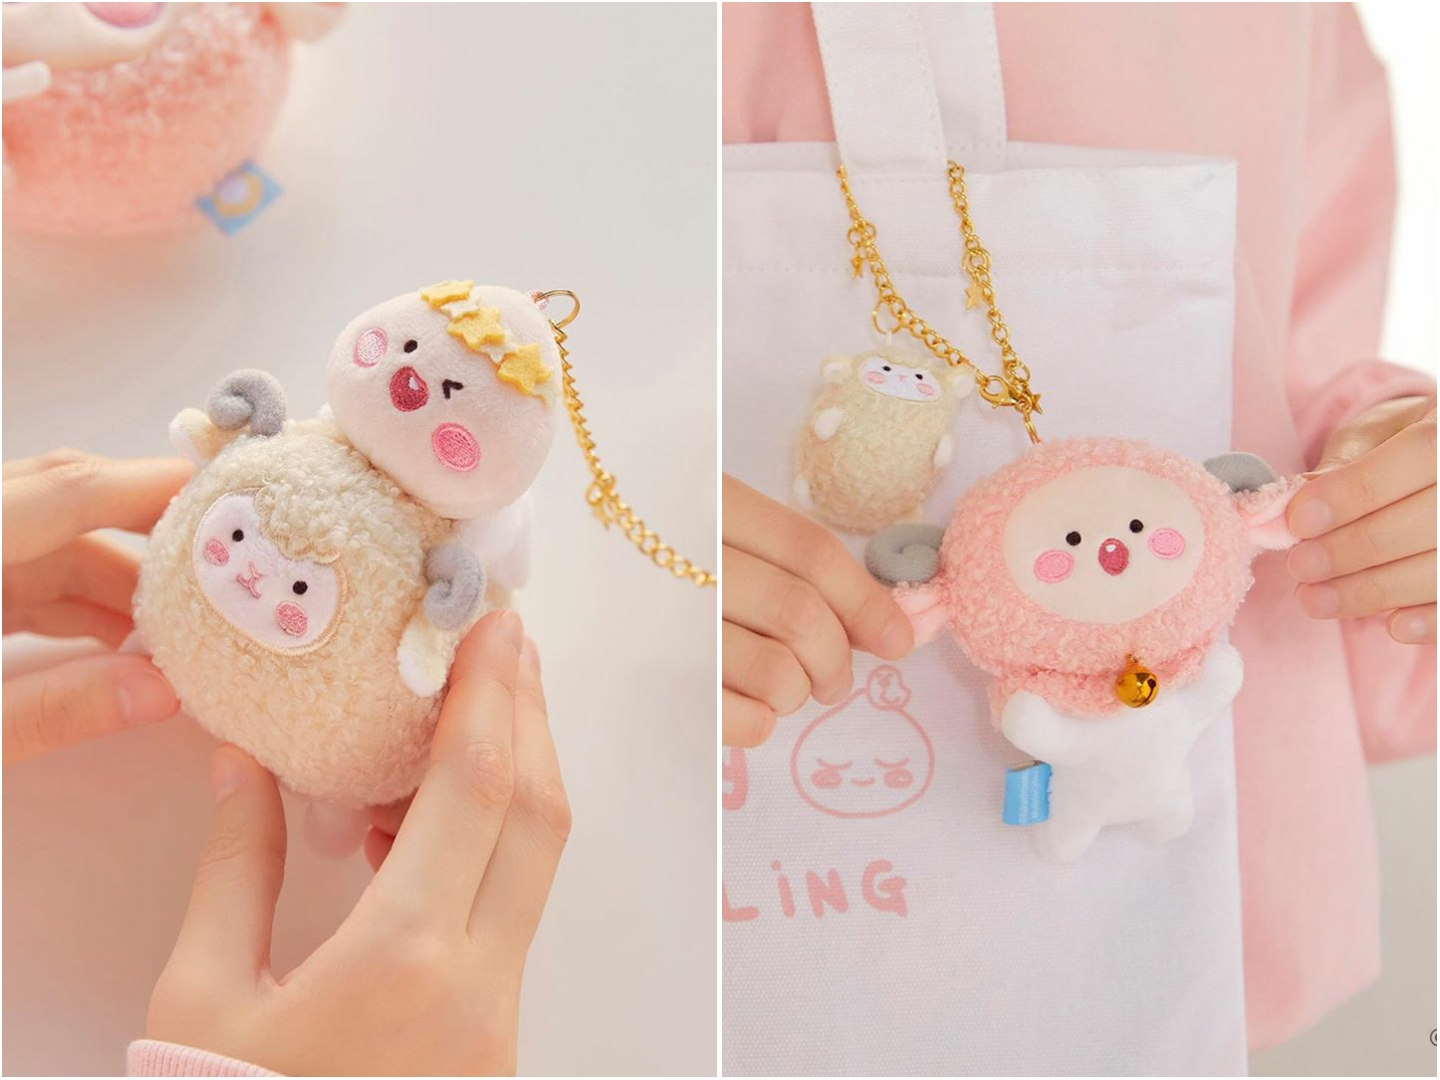 Pastel Lovely Apeach - Kakao Friends new collection, plush toy